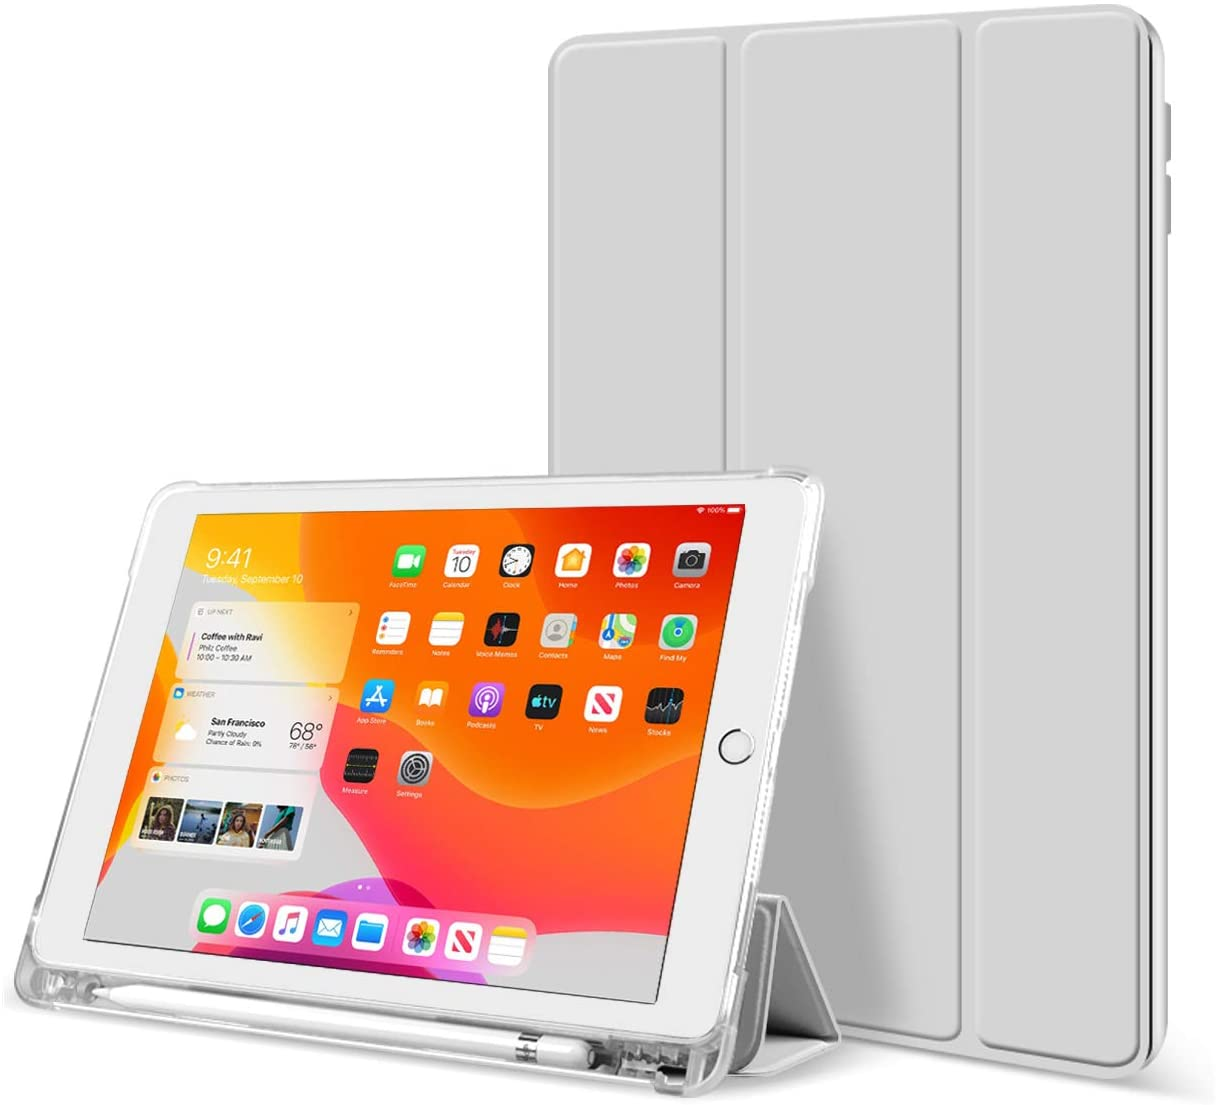 KenKe for iPad 10.2 Inch iPad 7th / 8th Gen 2019 2020 Tablet case with Pencil Holder -Lightweight Smart Shell Rugged Translucent Back Cover for iPad 7th Generation / iPad 8th Generation 10.2 (Gray)